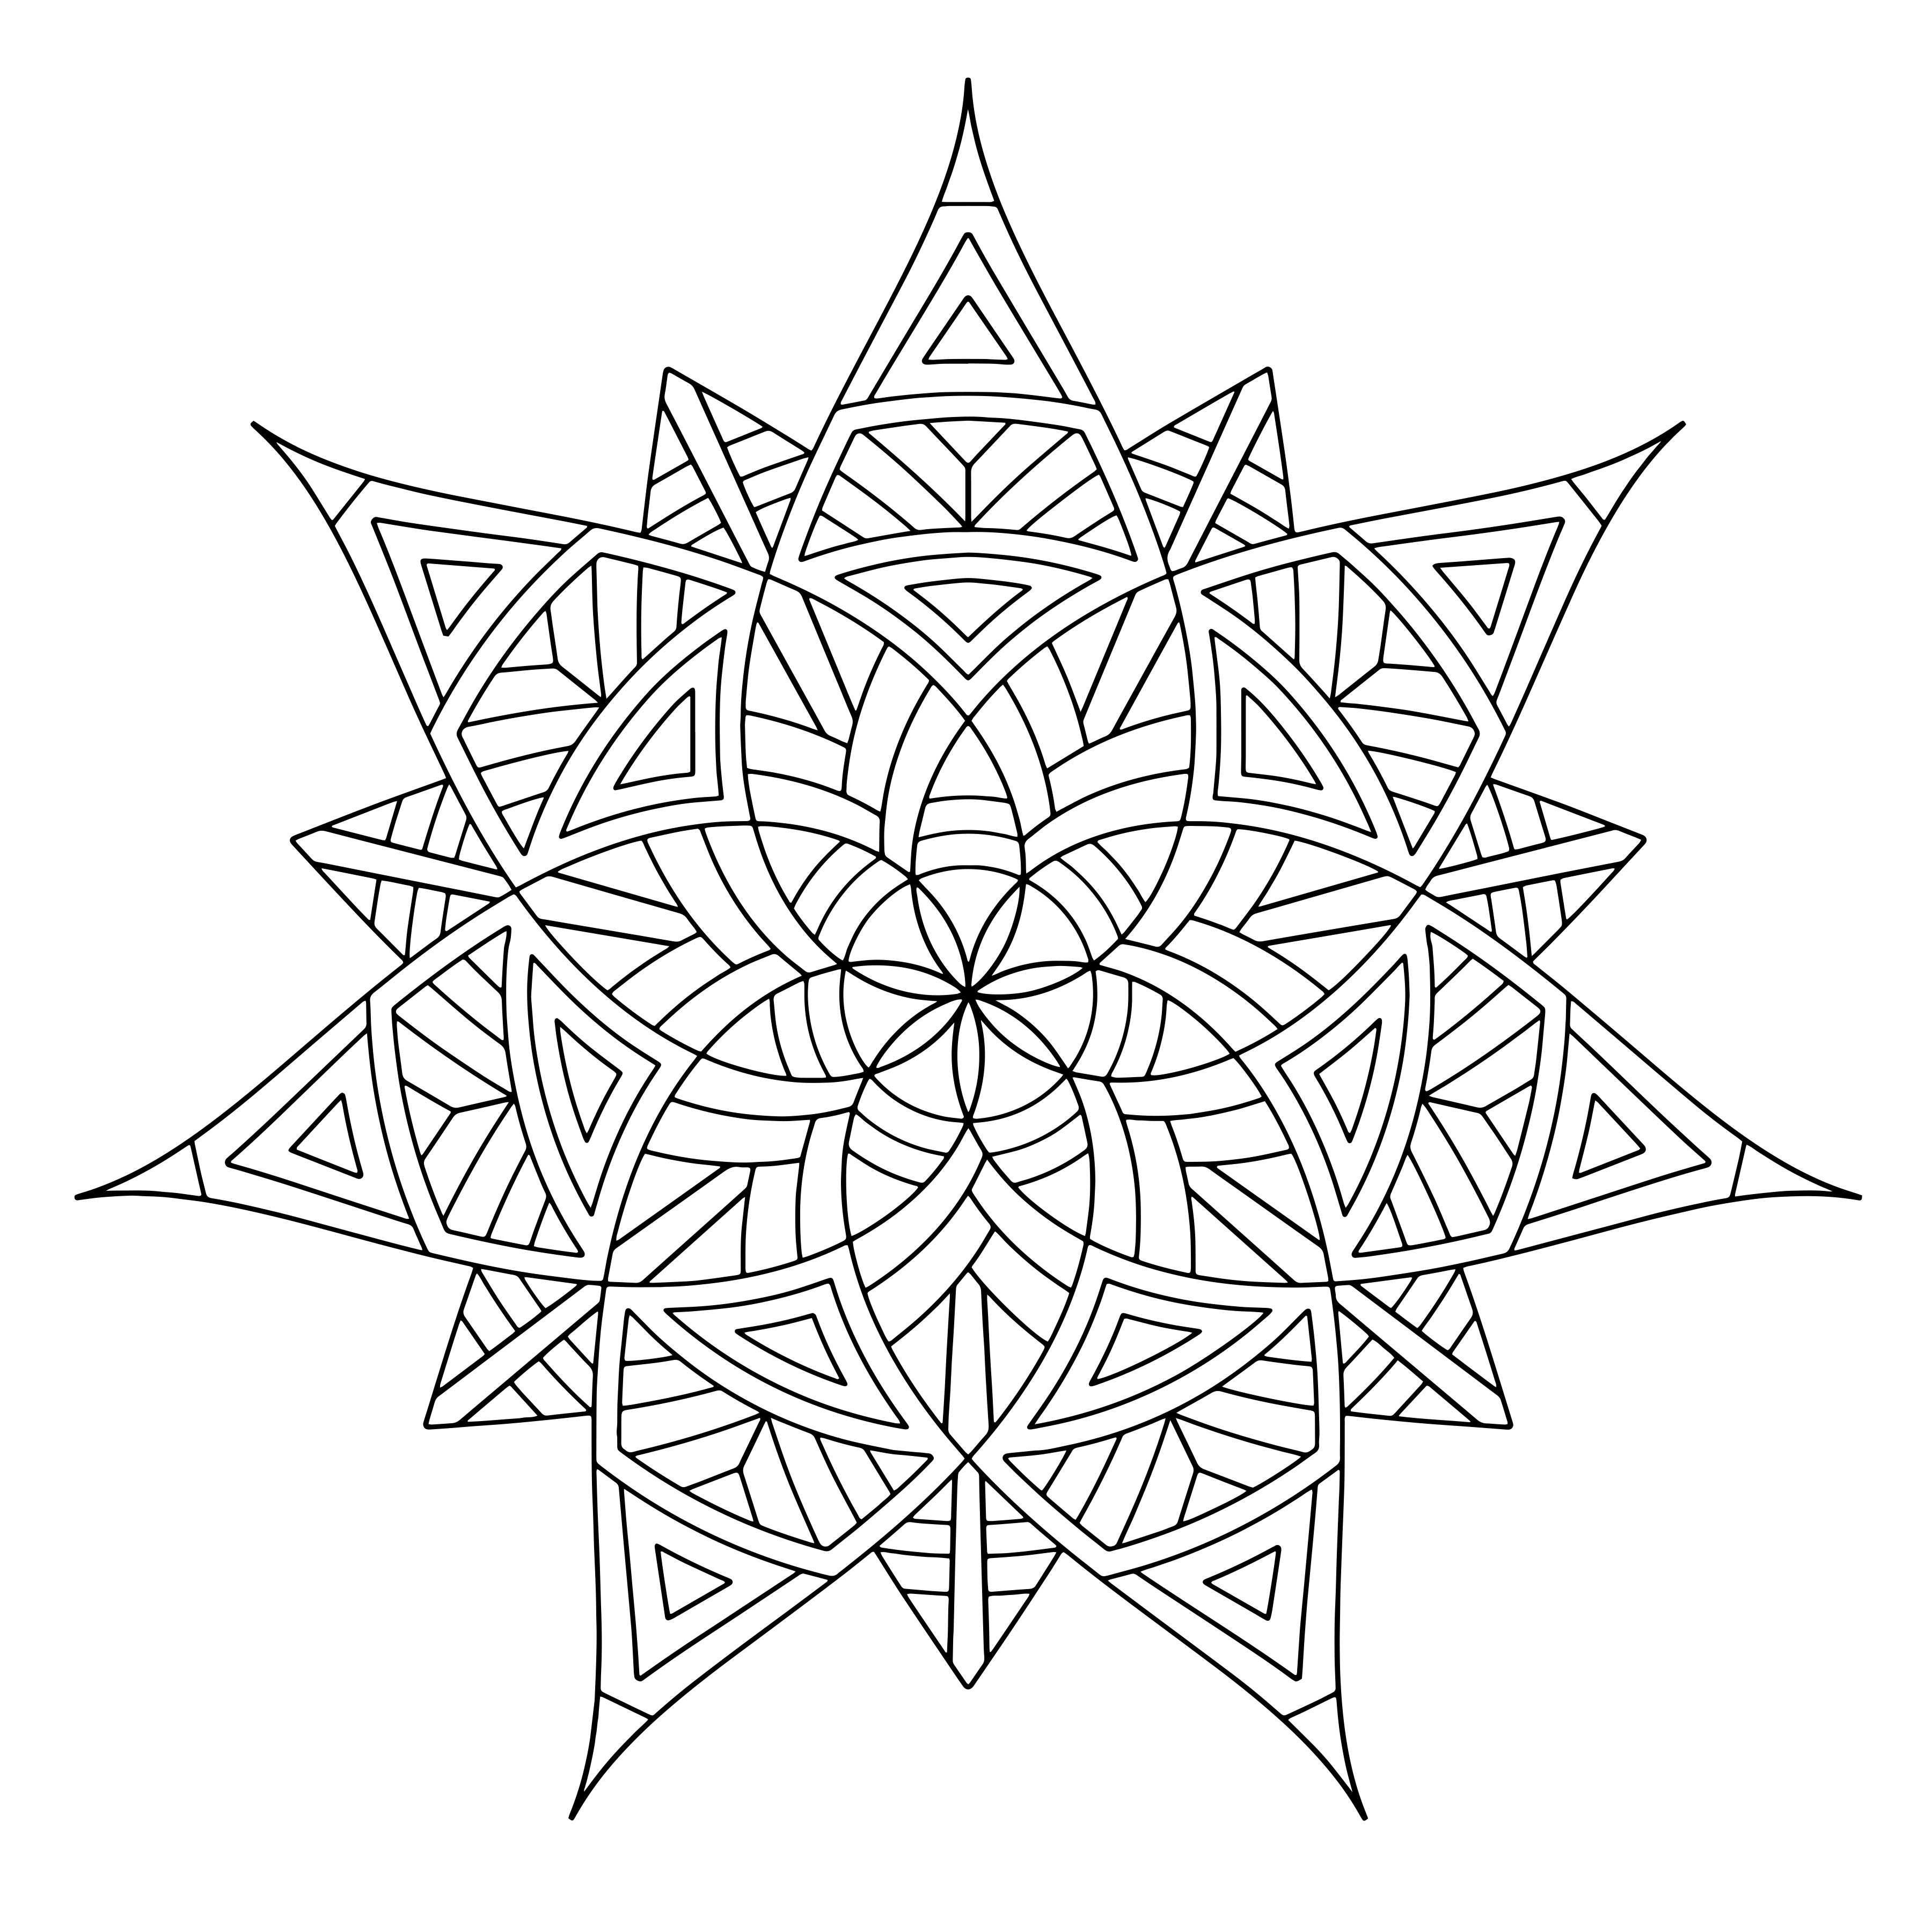 3600x3600 Coloring Page Design